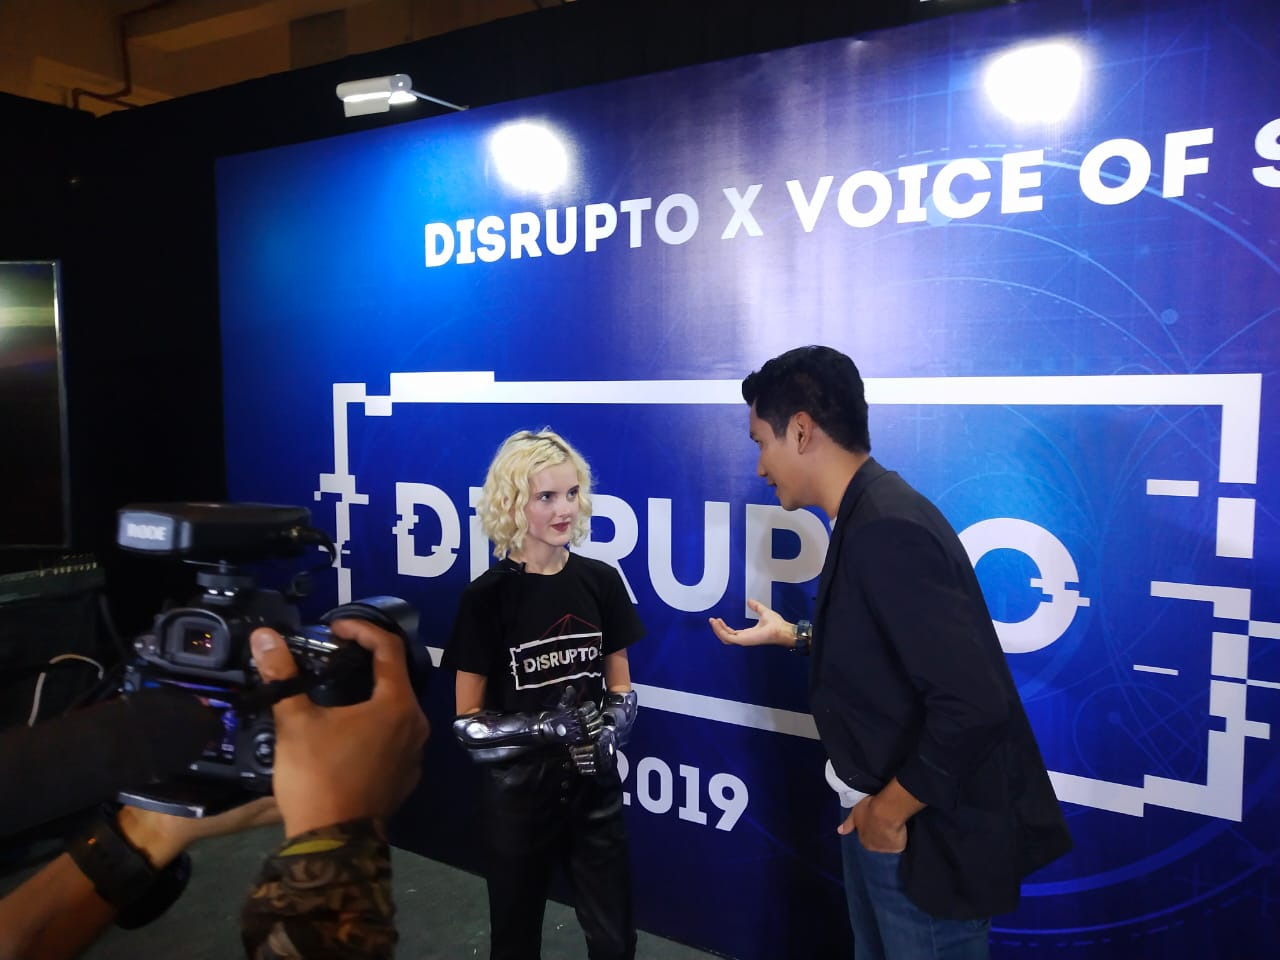 Tilly Lockey pada saat di interview oleh awak media di DISRUPTO 2019